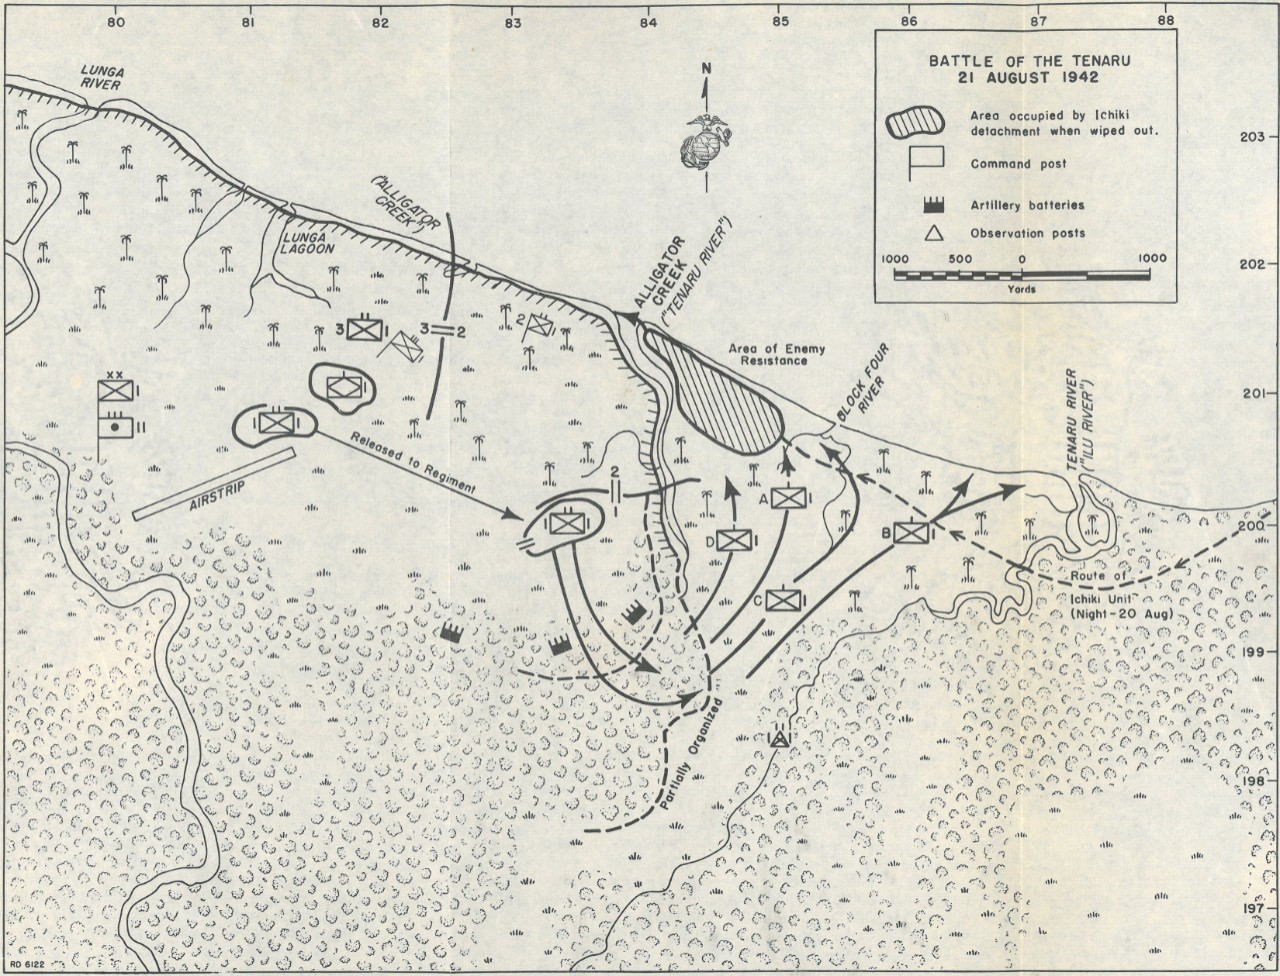 Map 6: Battle of the Tenaru: 21 August 1942